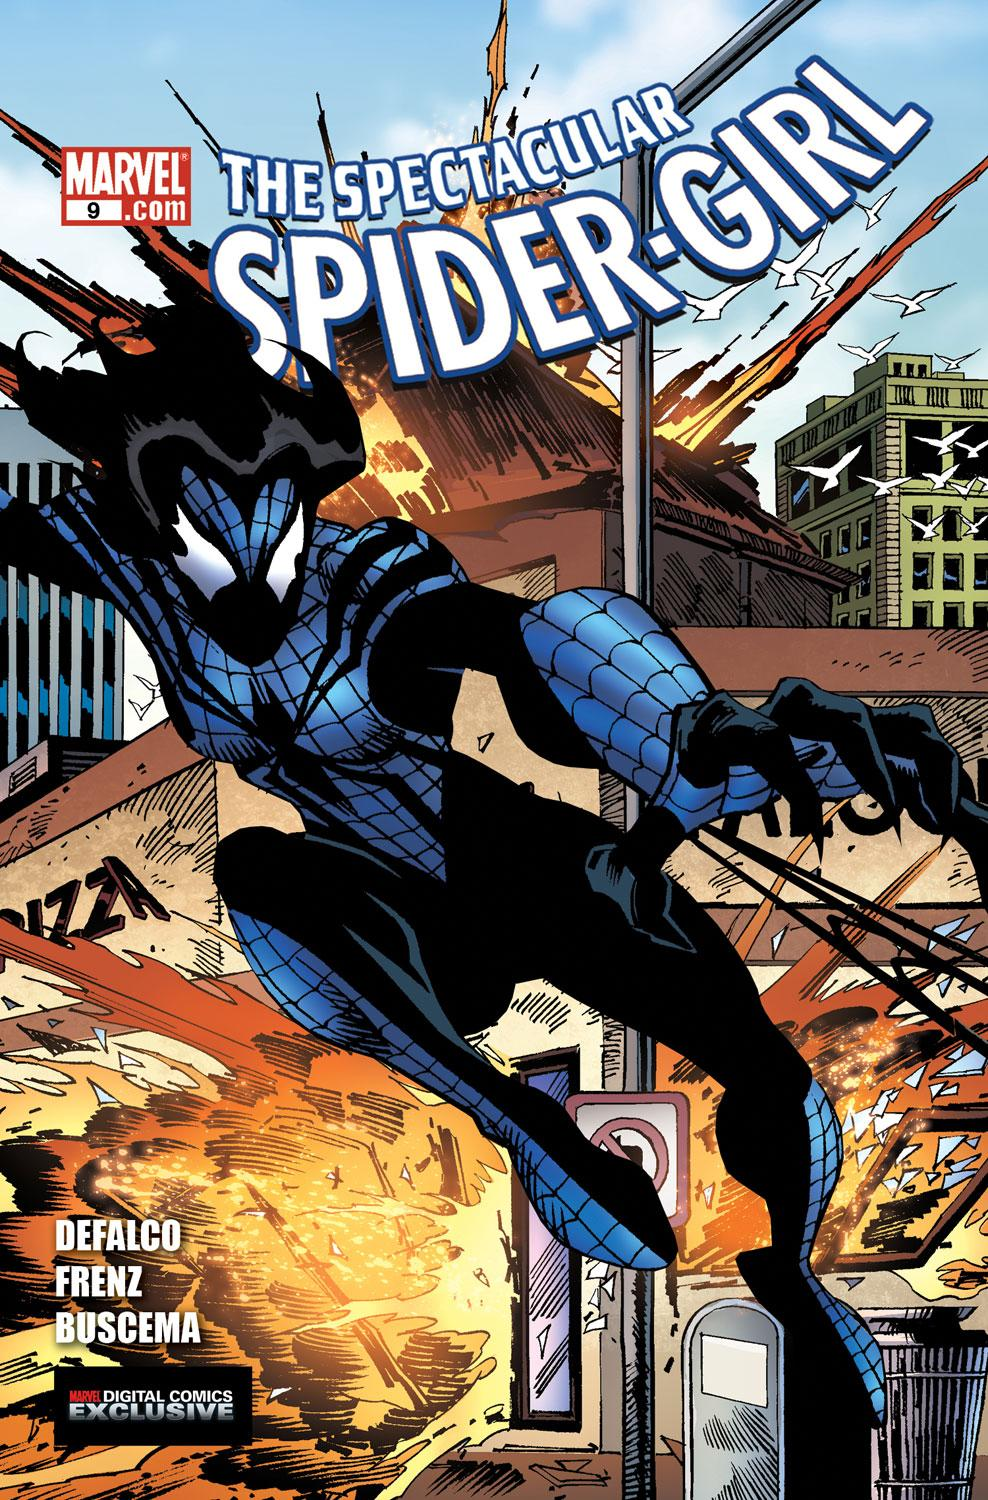 Spectacular Spider-Girl (2009) #9